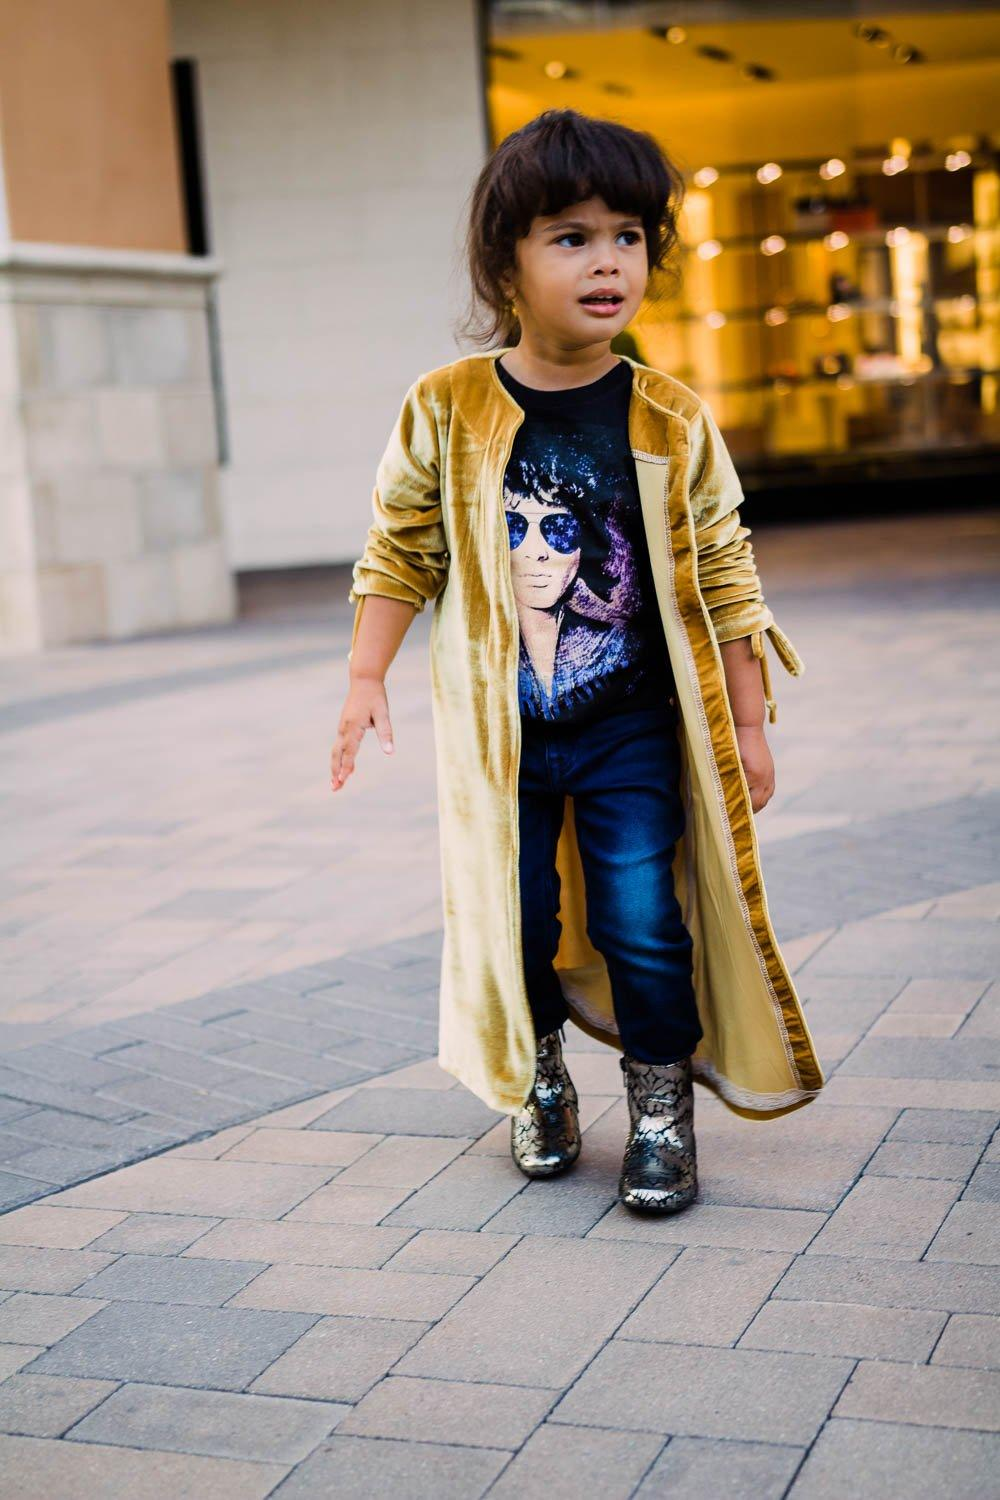 Cardigan Wrap - Gold Cardigan Toddler Girls - Ruched Sleeves